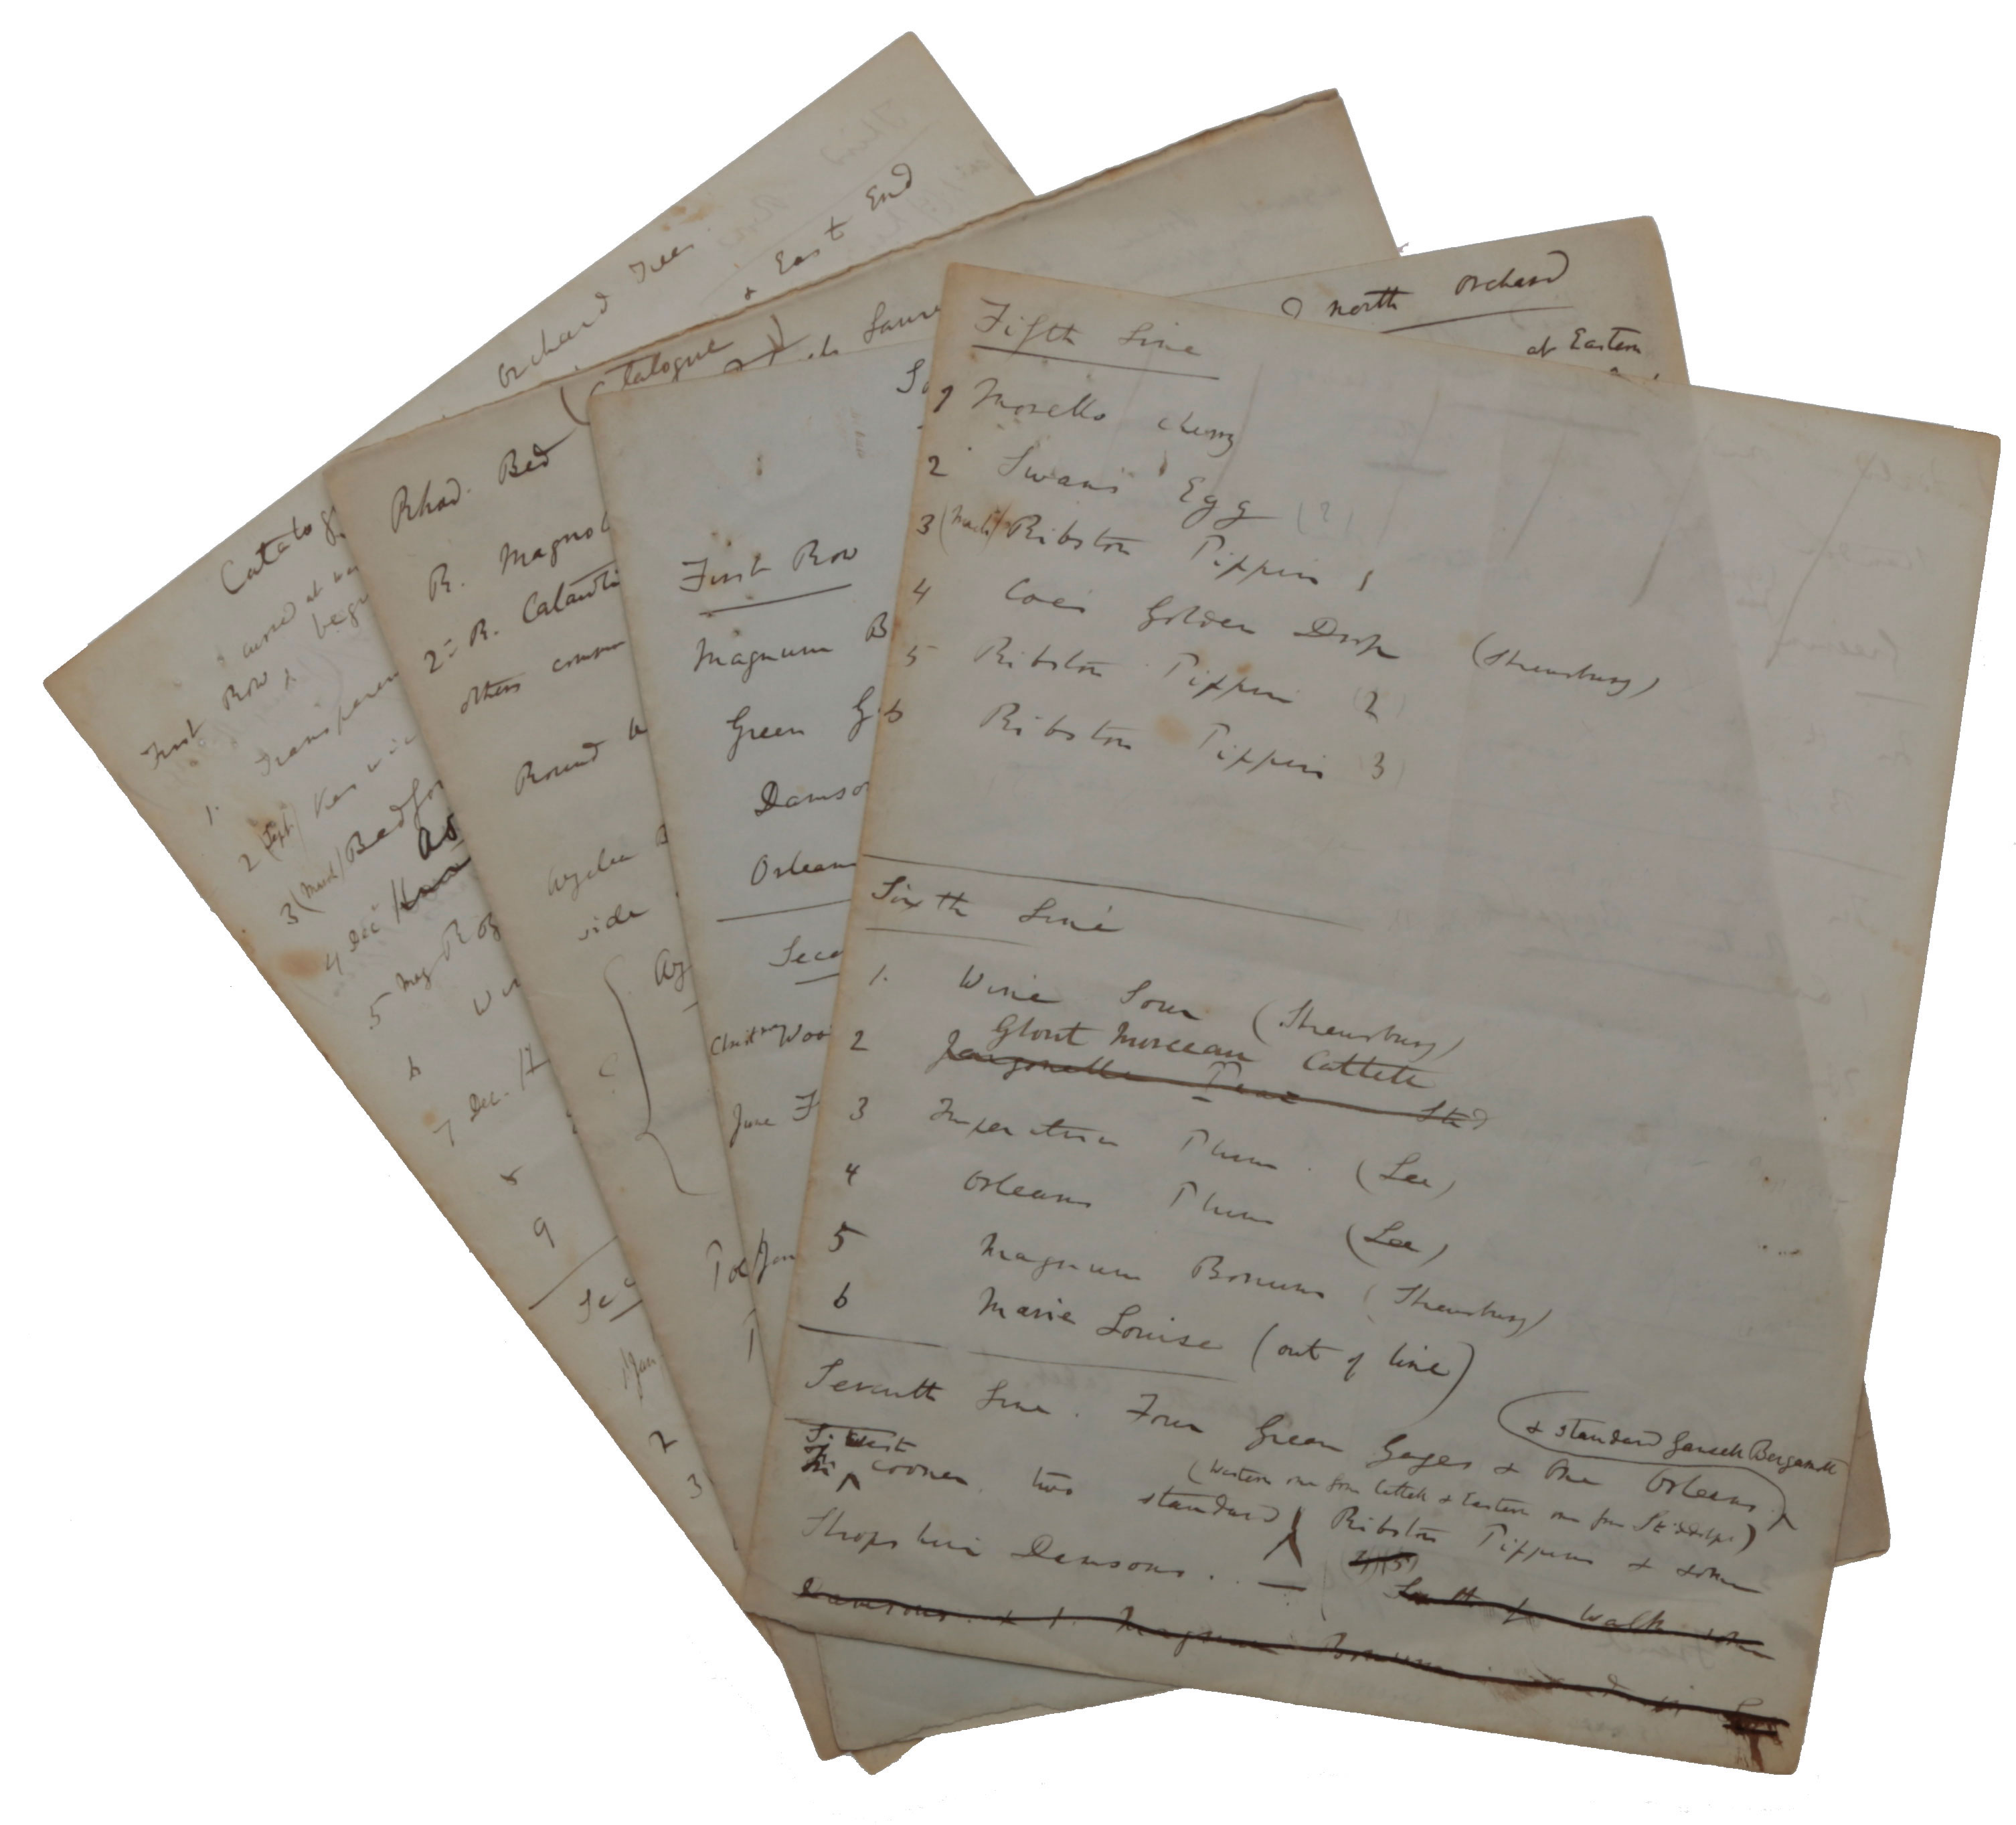 Autograph eleven-page manuscript on six leaves, listing the wide variety of trees and other plants in the grounds of Down House during 1844-1846 when extensive planting and landscaping took place. Charles DARWIN.